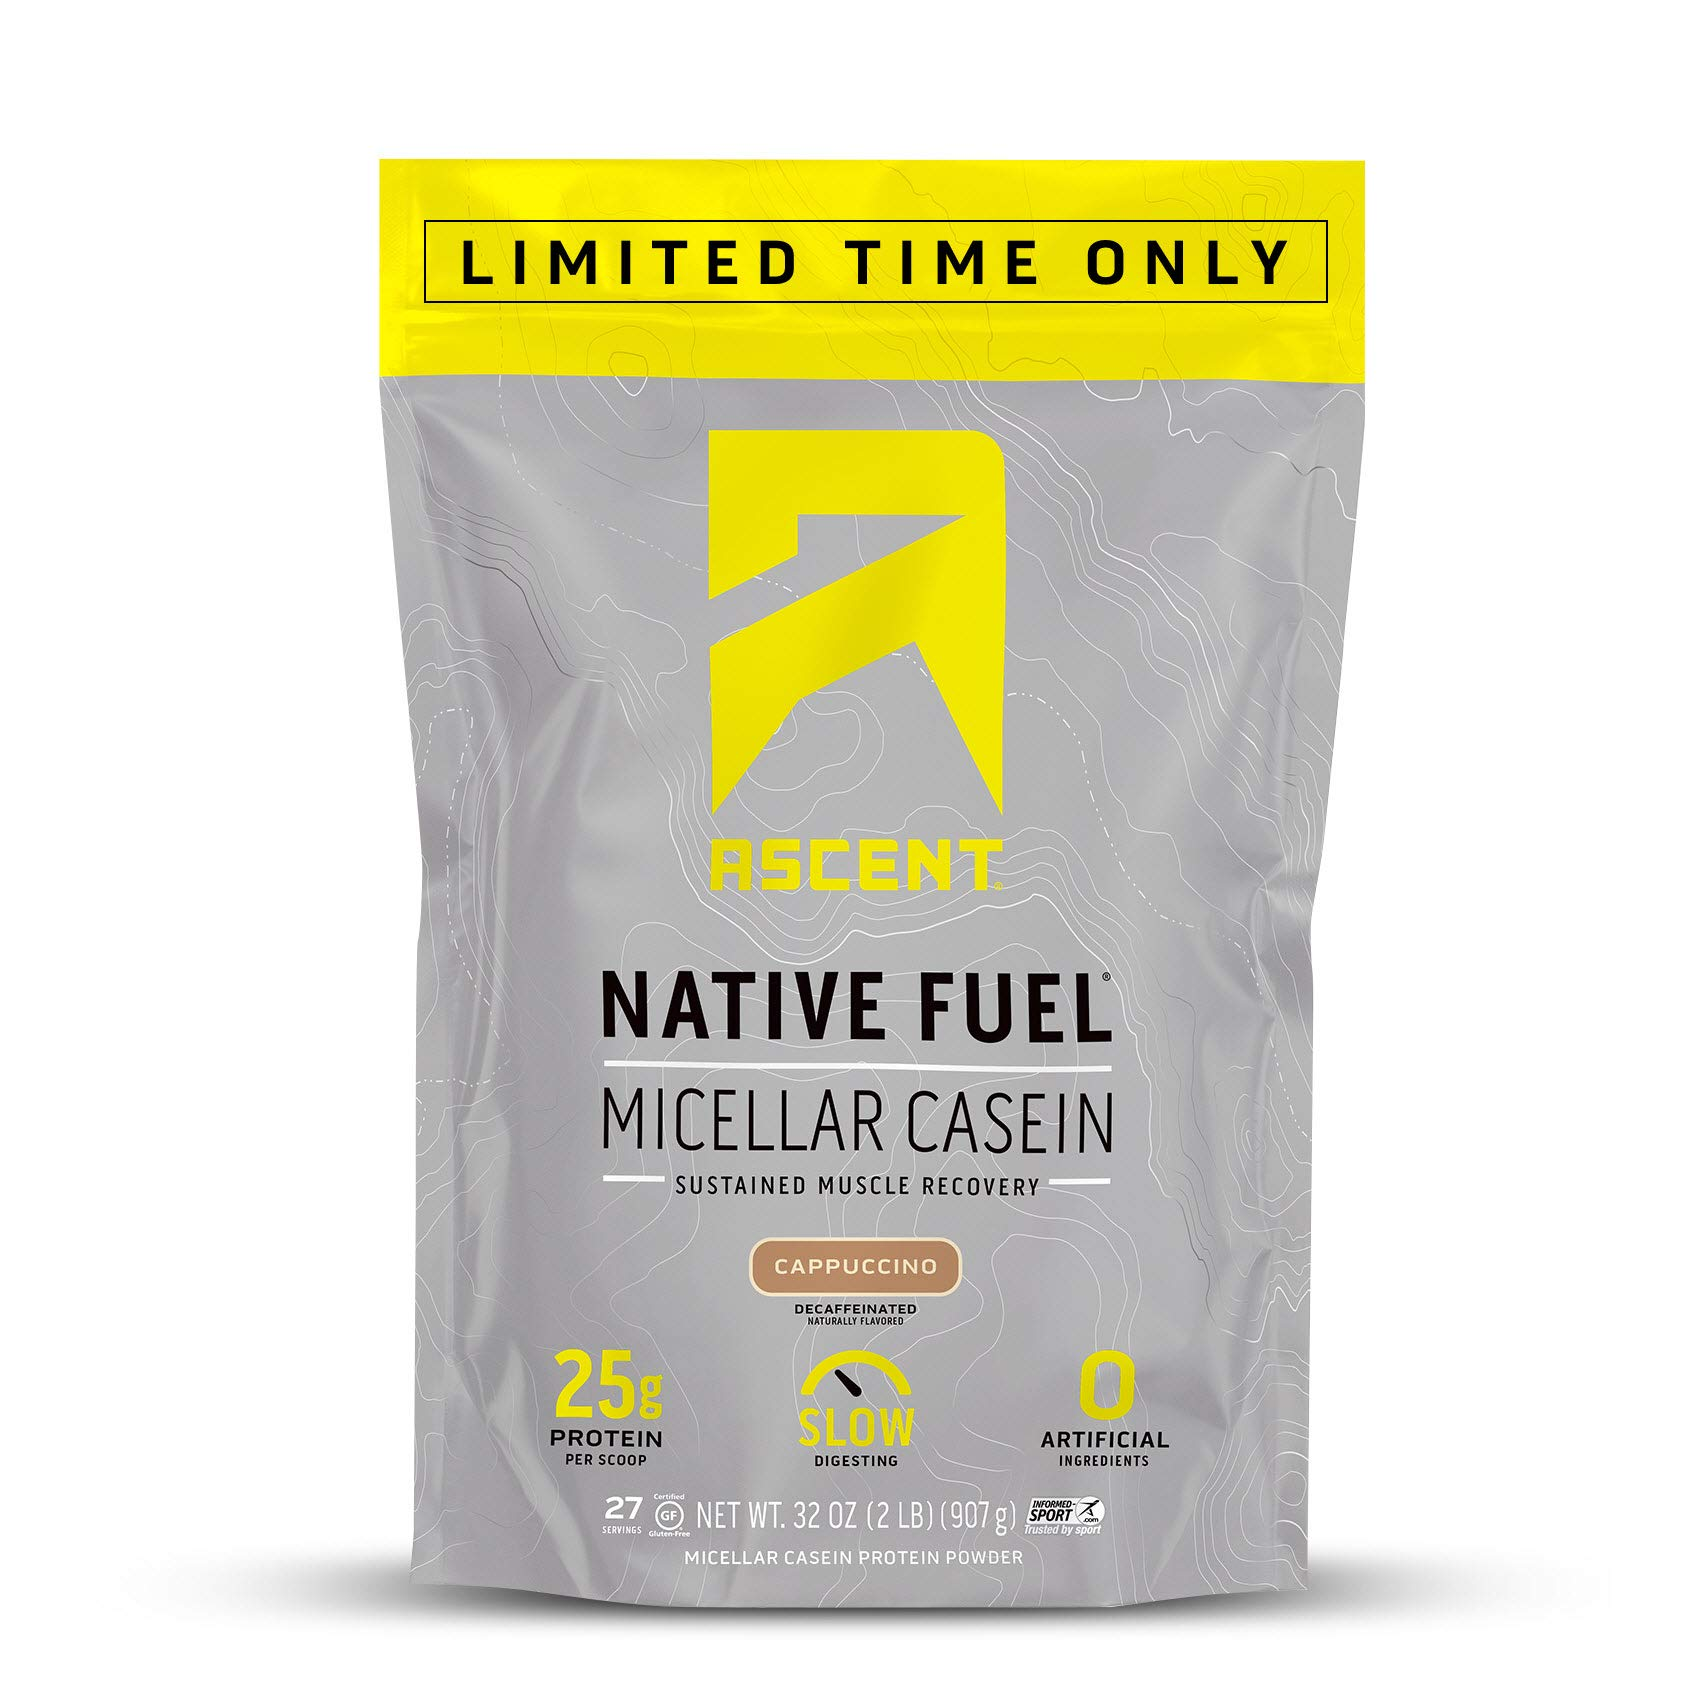 Ascent Native Fuel Micellar Casein Protein Powder - 2 Lbs - Cappuccino - Limited Time Offer